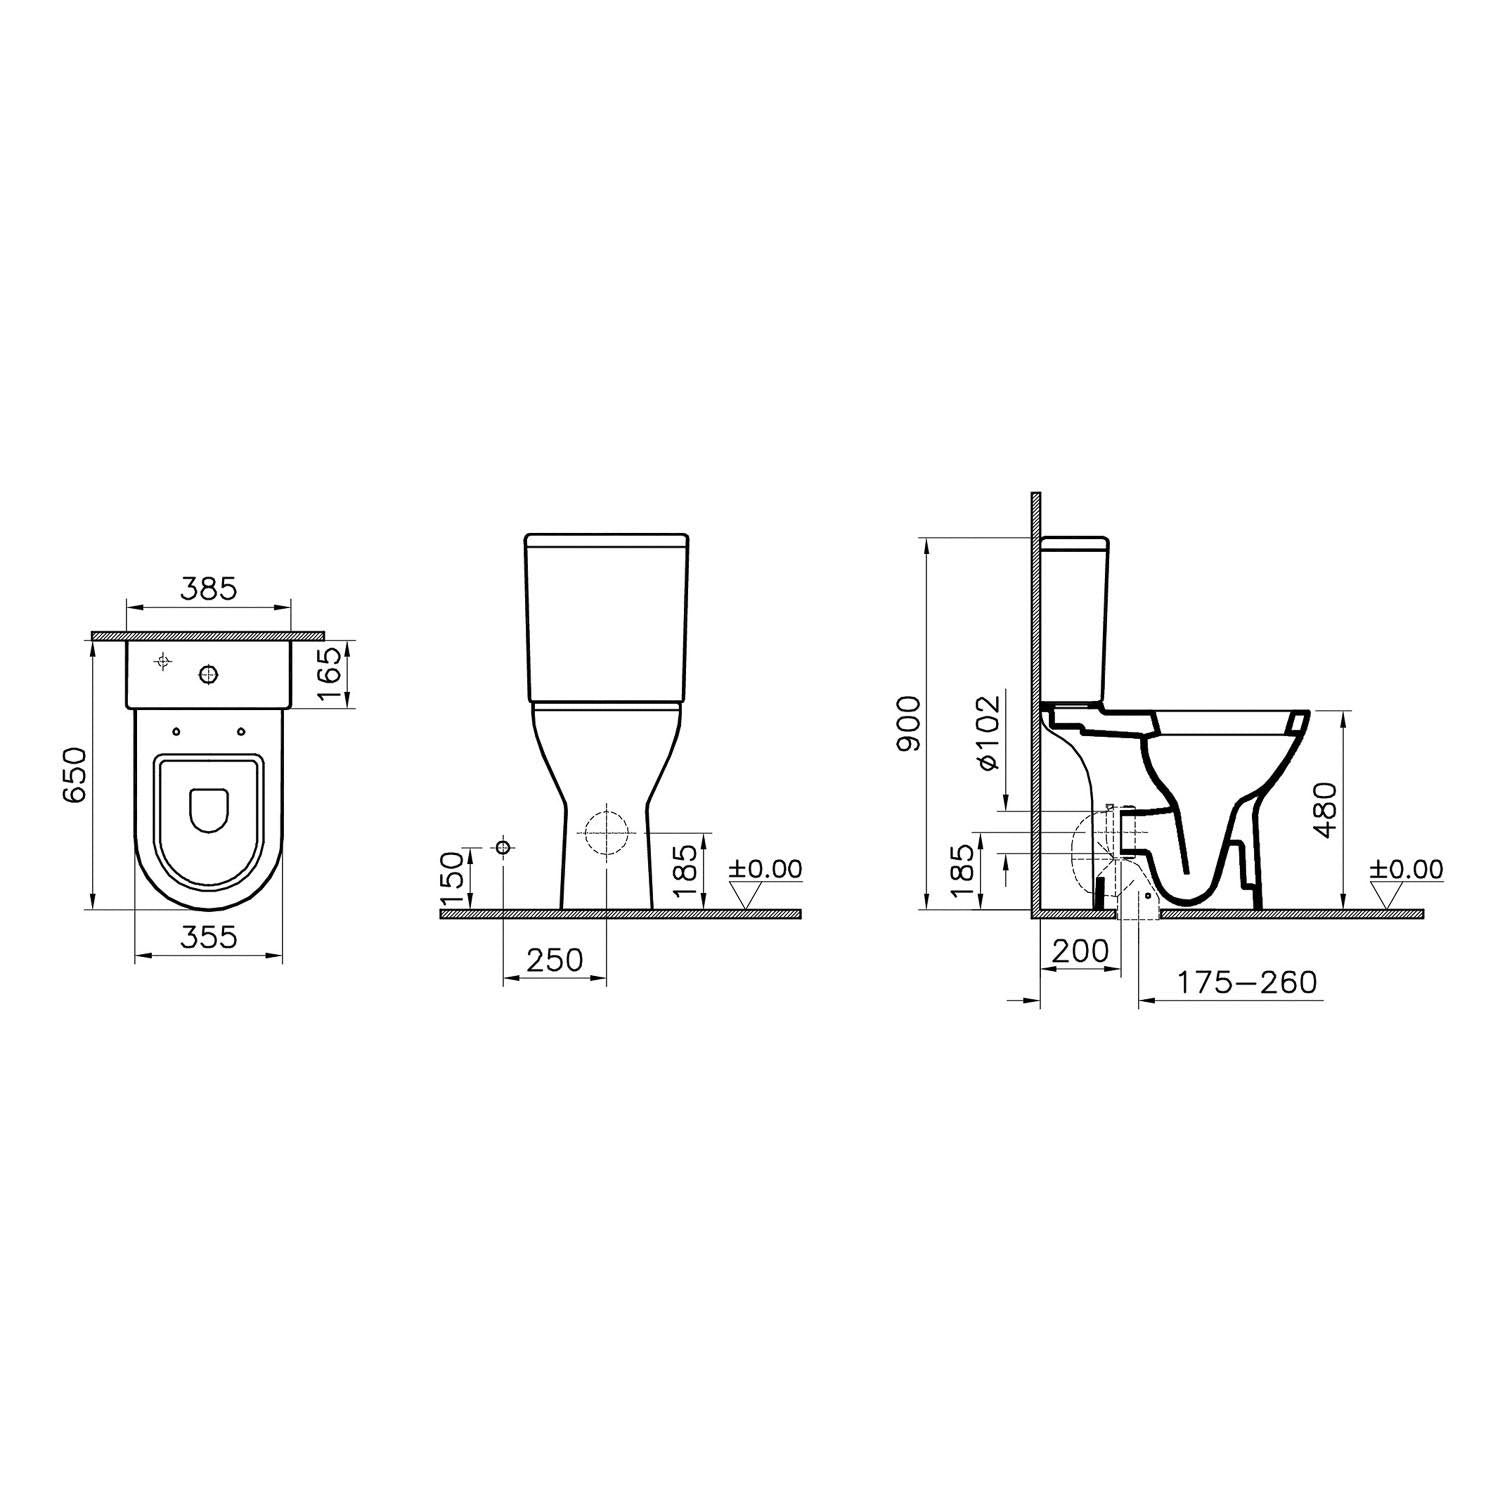 Raised Flush Close Coupled Cistern dimensional drawing